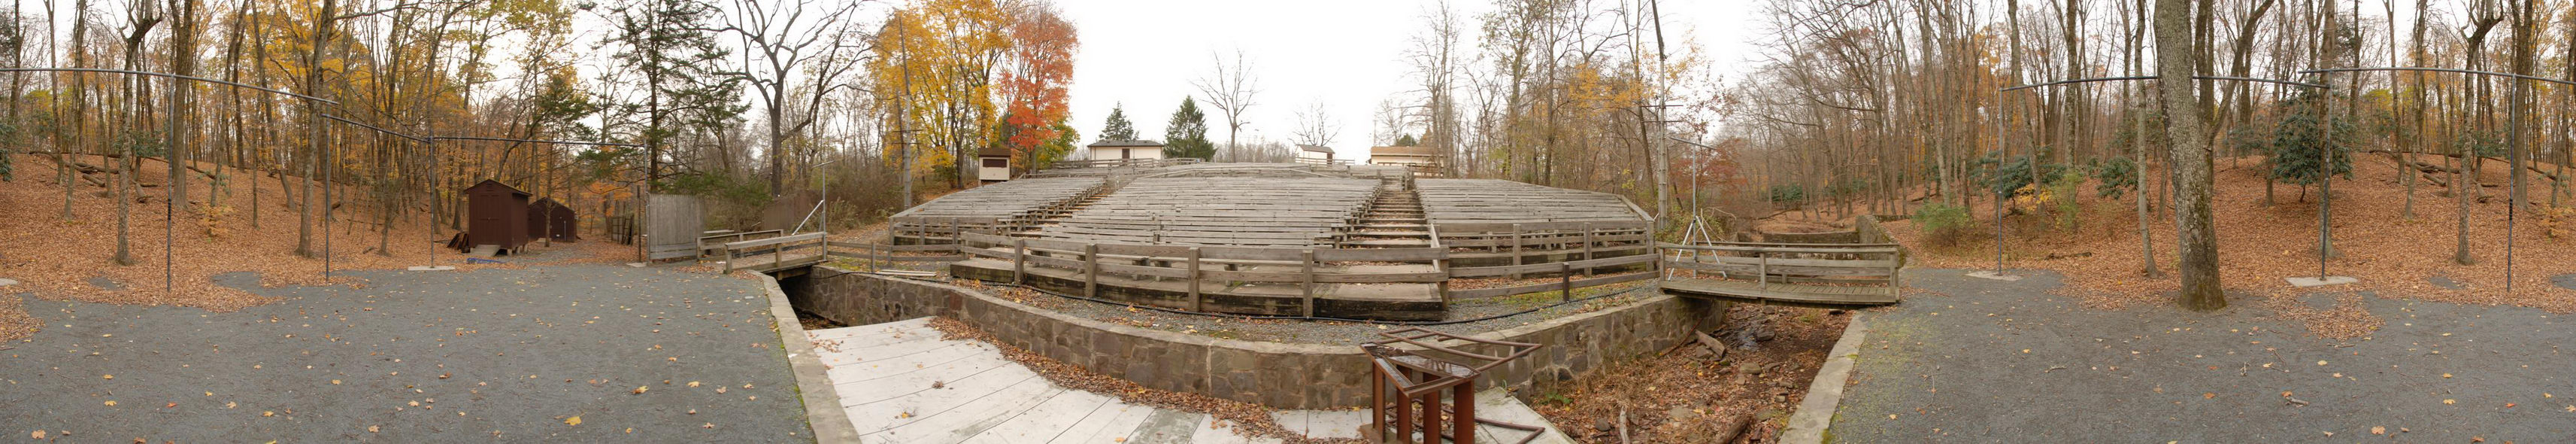 fall colors, open air theater, panoramic, stage